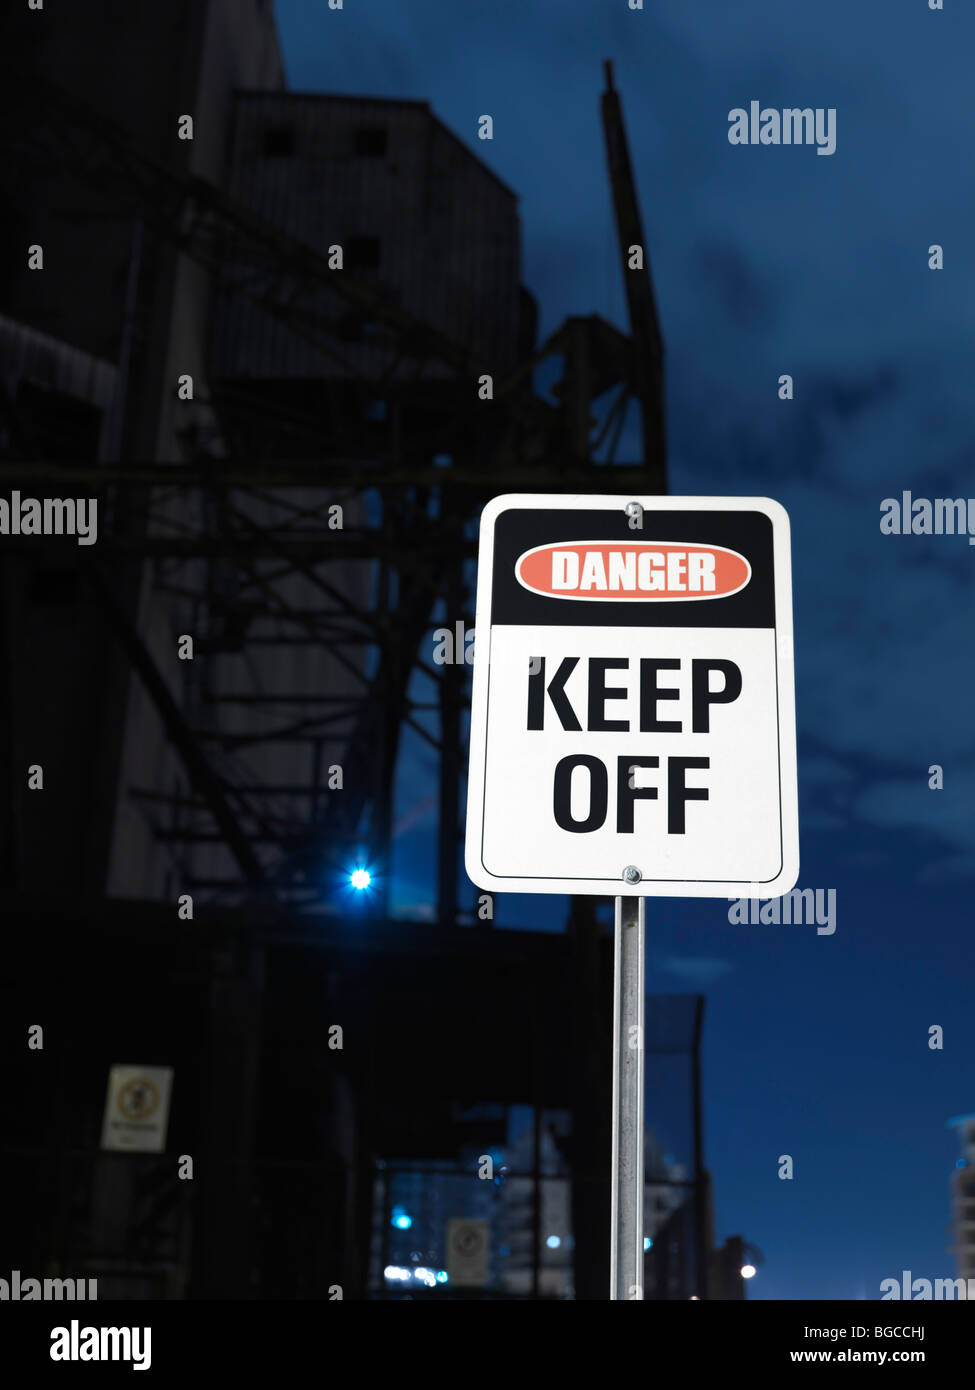 Danger - Keep Off sign with an industrial building in the background - Stock Image